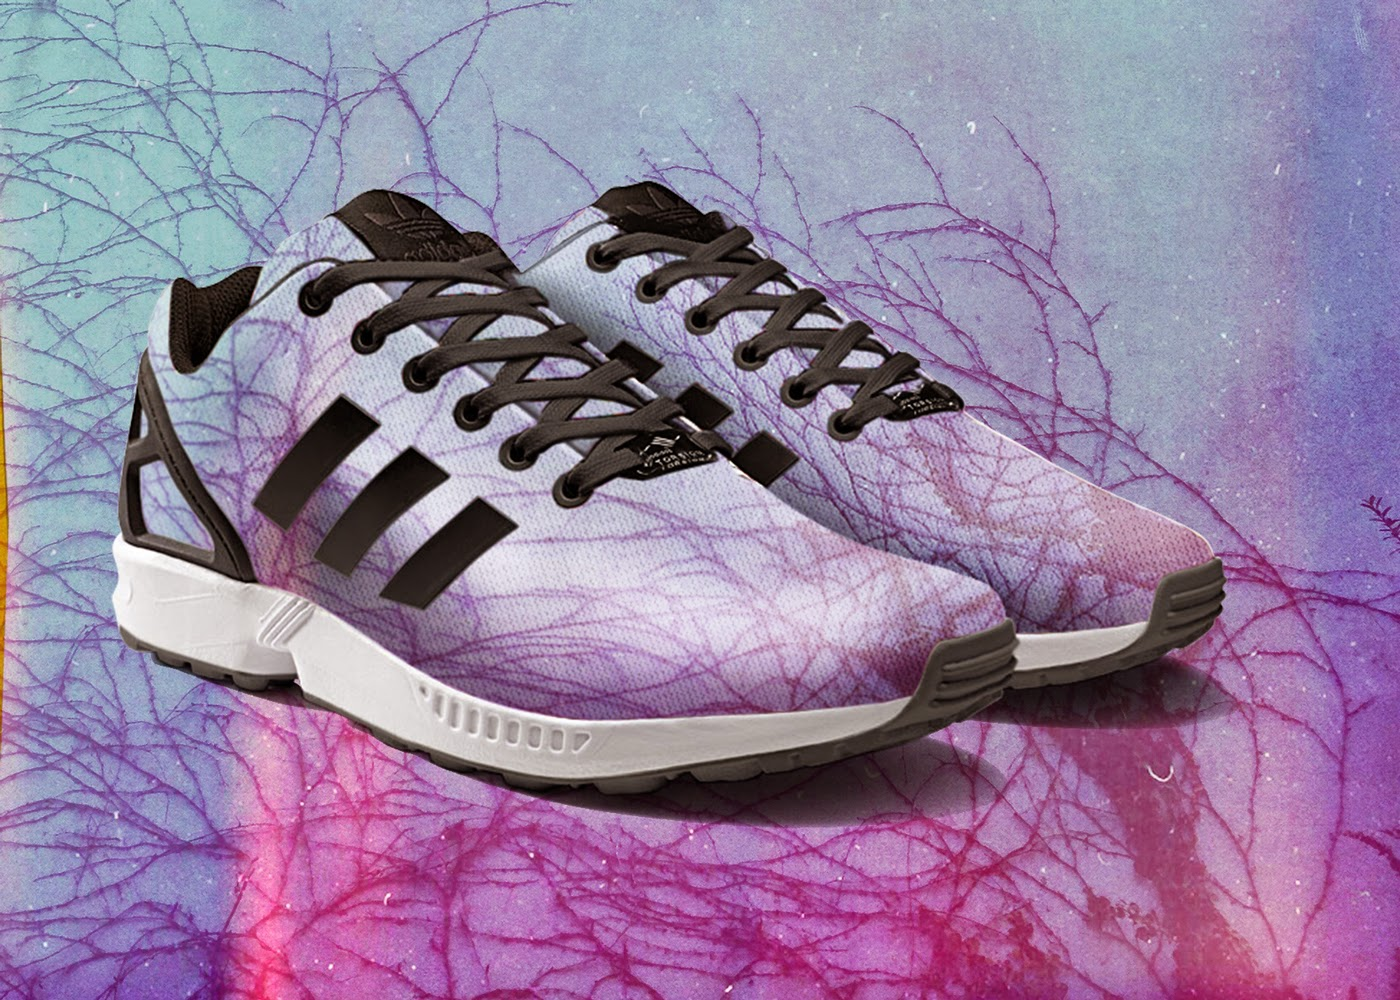 14-mi-Adidas-ZX-Flux-Shoe-App-to-Customise-your-Shoes-www-designstack-co